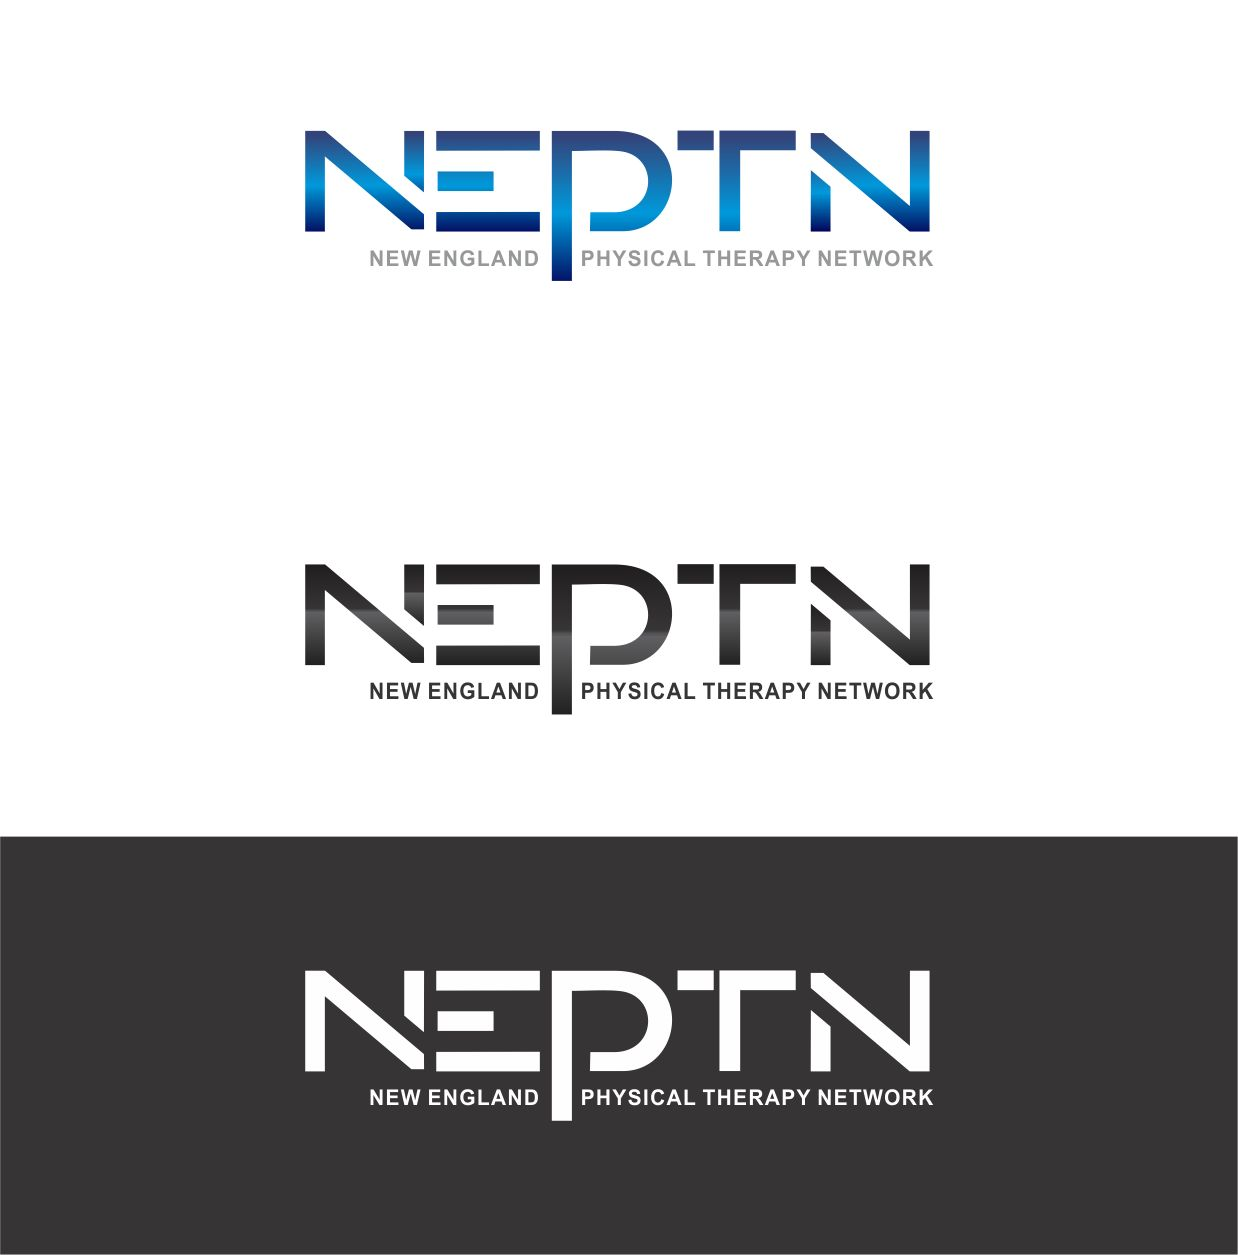 Logo Design by Muhammad Aslam - Entry No. 98 in the Logo Design Contest Fun Logo Design for NEPTN - New England Physical Therapy Network.